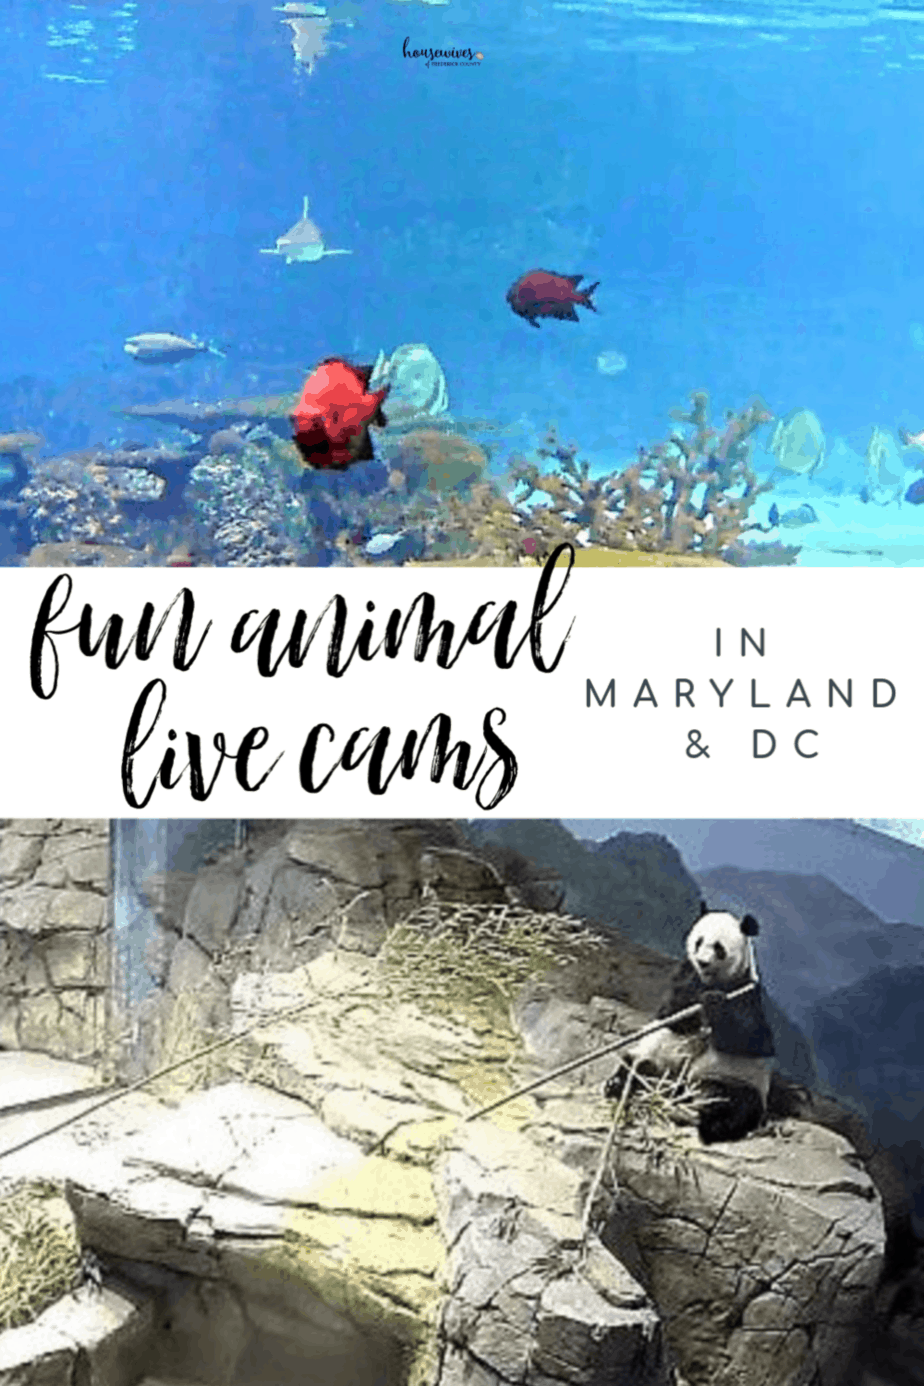 Fun Animal Live Cams in Maryland & DC: Feel Like You're There